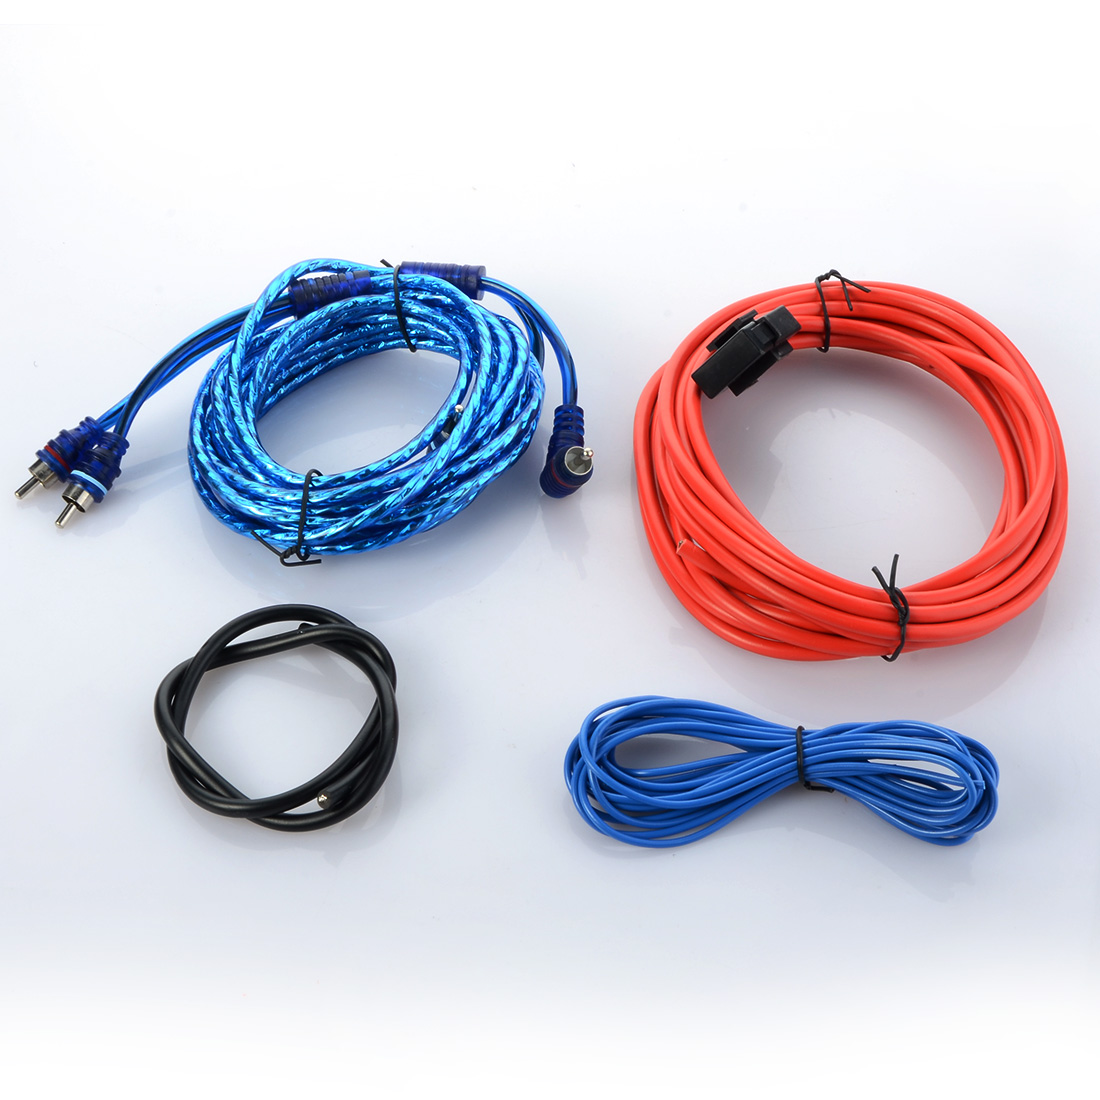 hight resolution of audio speaker wiring kit cable amplifier subwoofer speaker installation wire 8ga in cables adapters sockets from automobiles motorcycles on